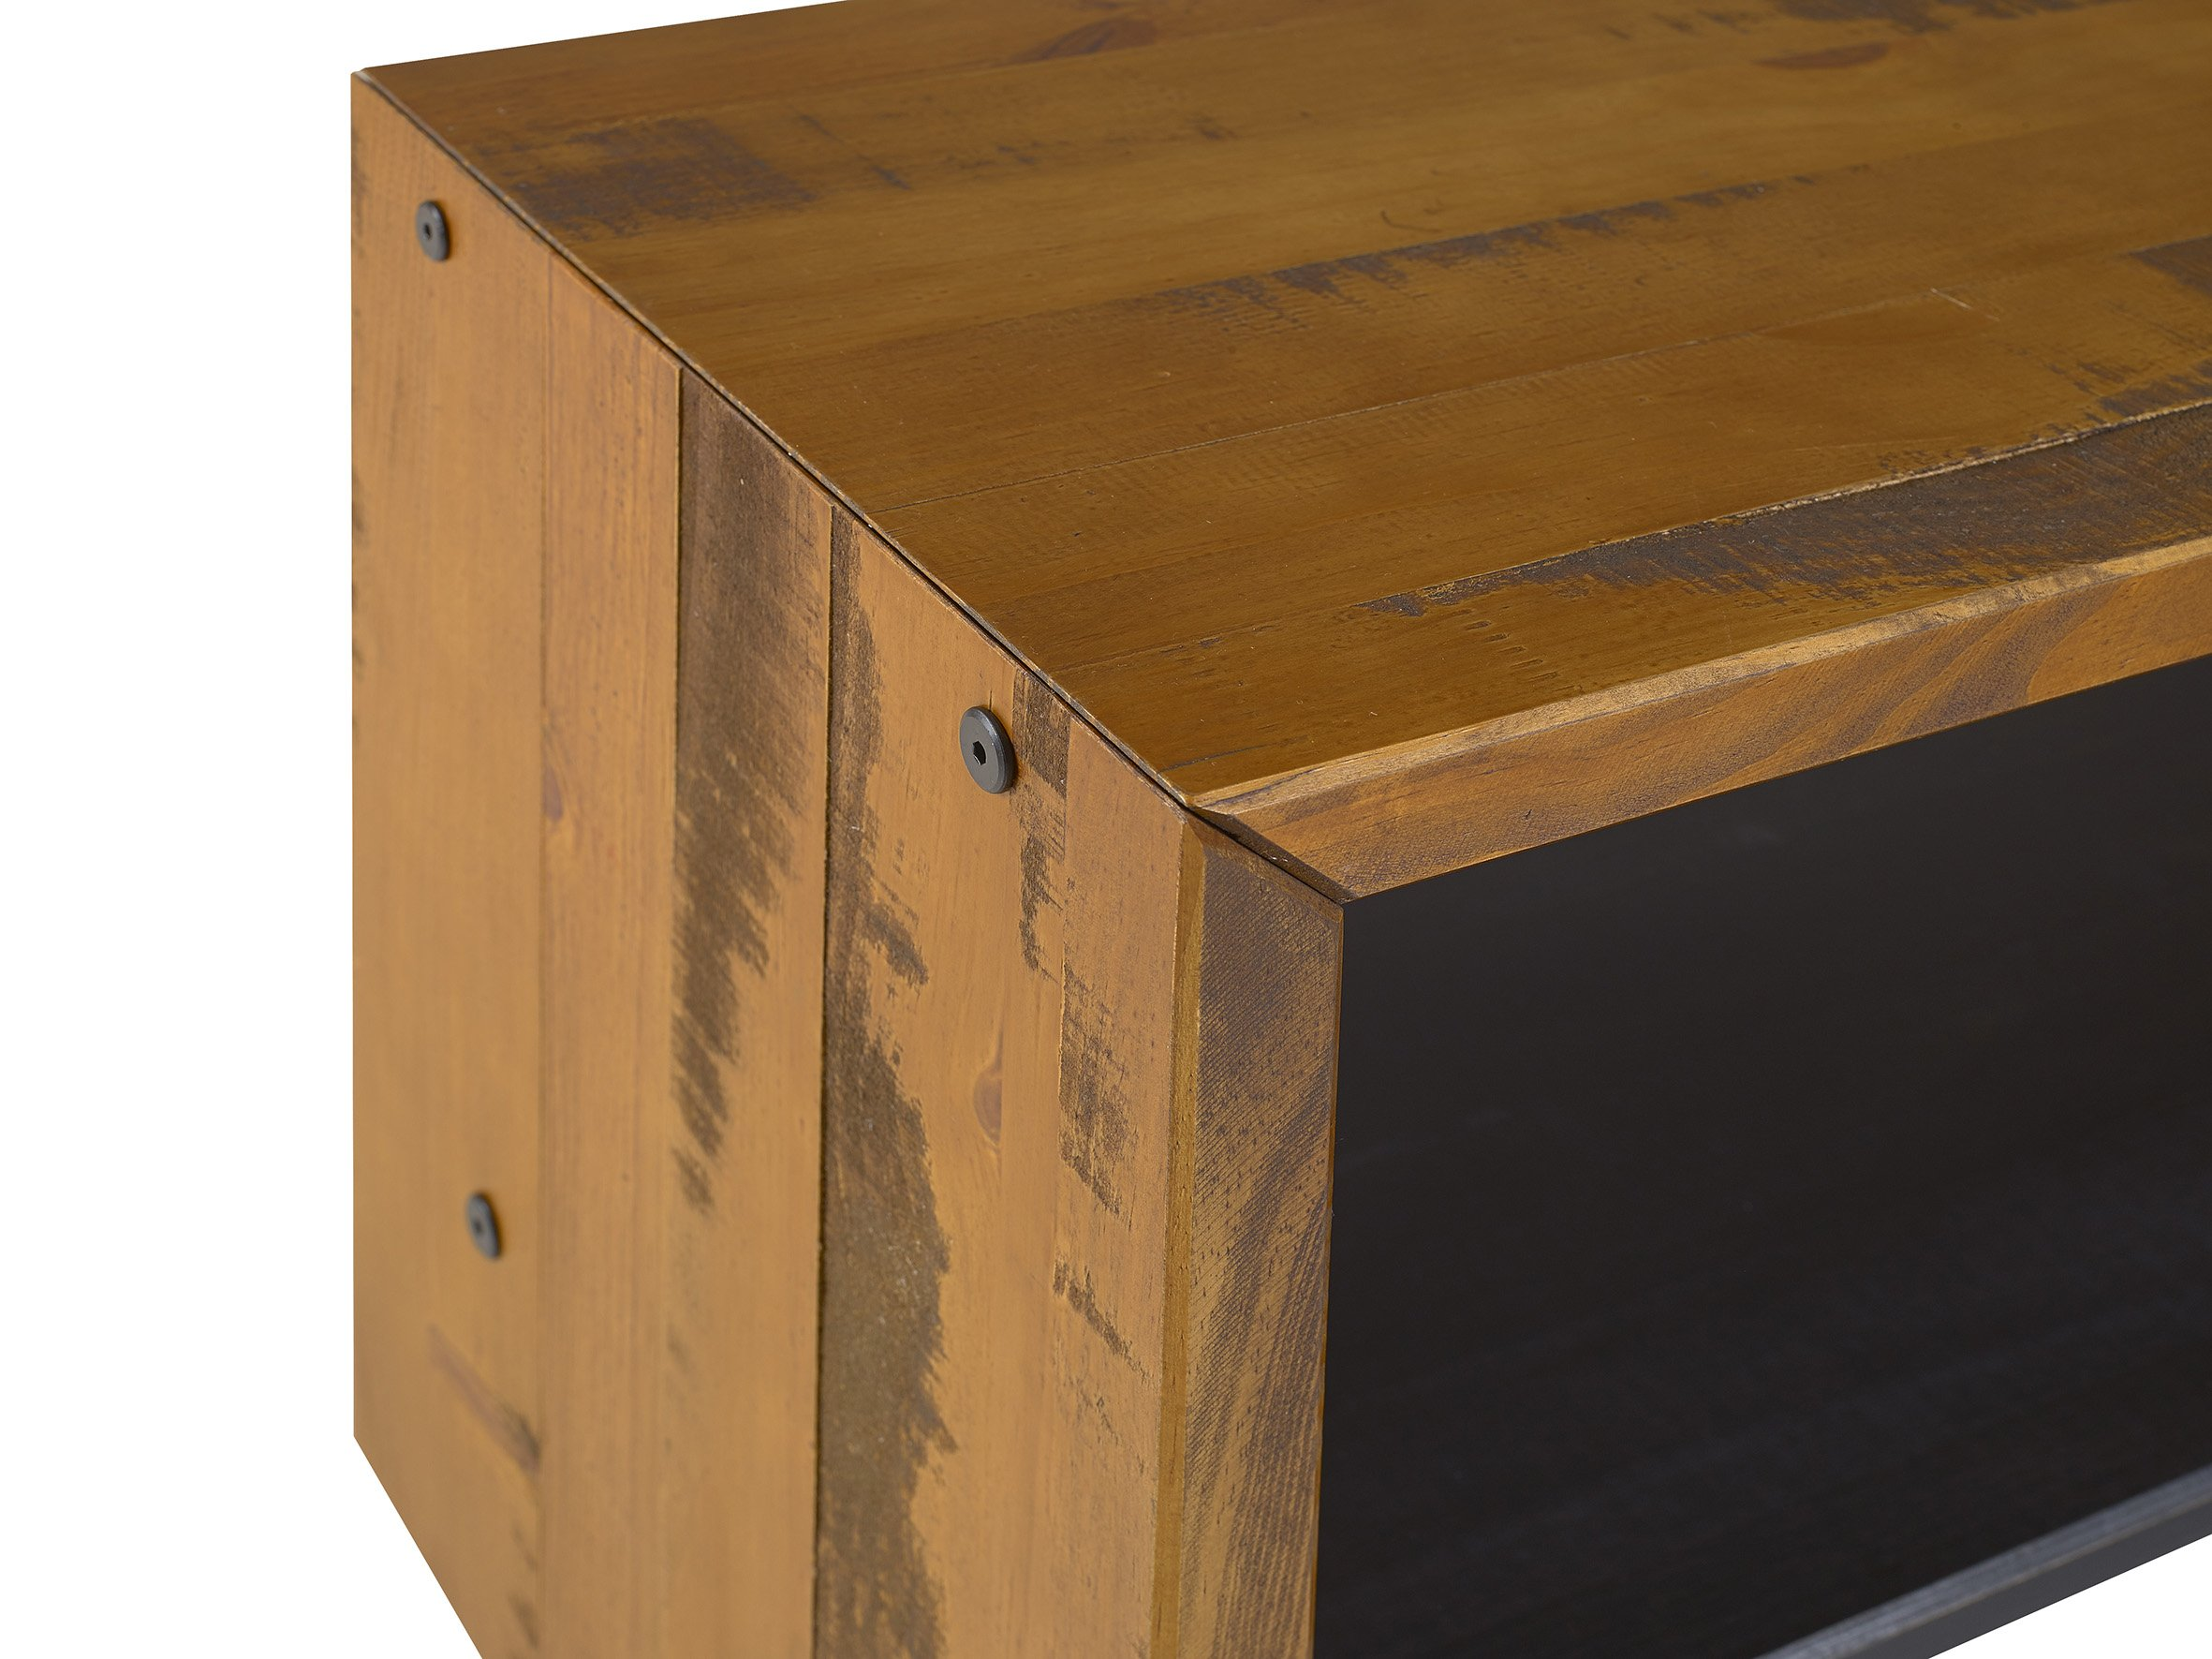 WE Furniture Reclaimed Wood Entry Bench in Amber - 42'' by WE Furniture (Image #4)